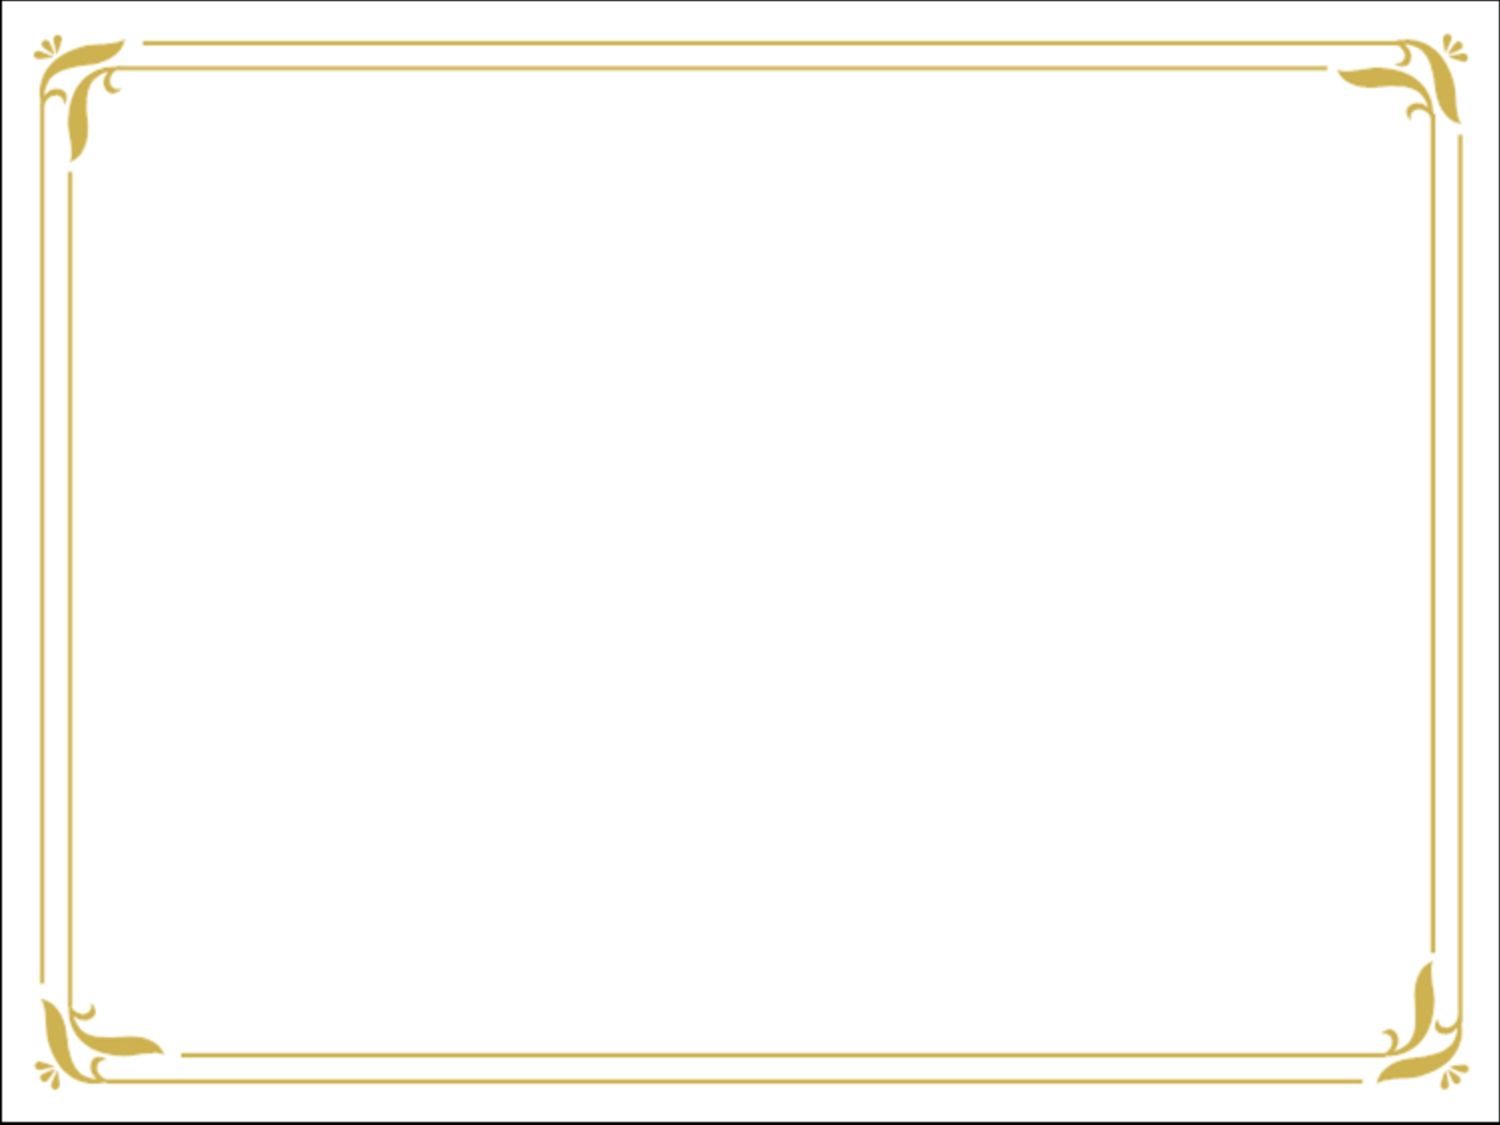 Download simple gold certificate border ppt template from the above download simple gold certificate border ppt template from the above resolutions if you dont find the exact resolution you are looking for toneelgroepblik Gallery